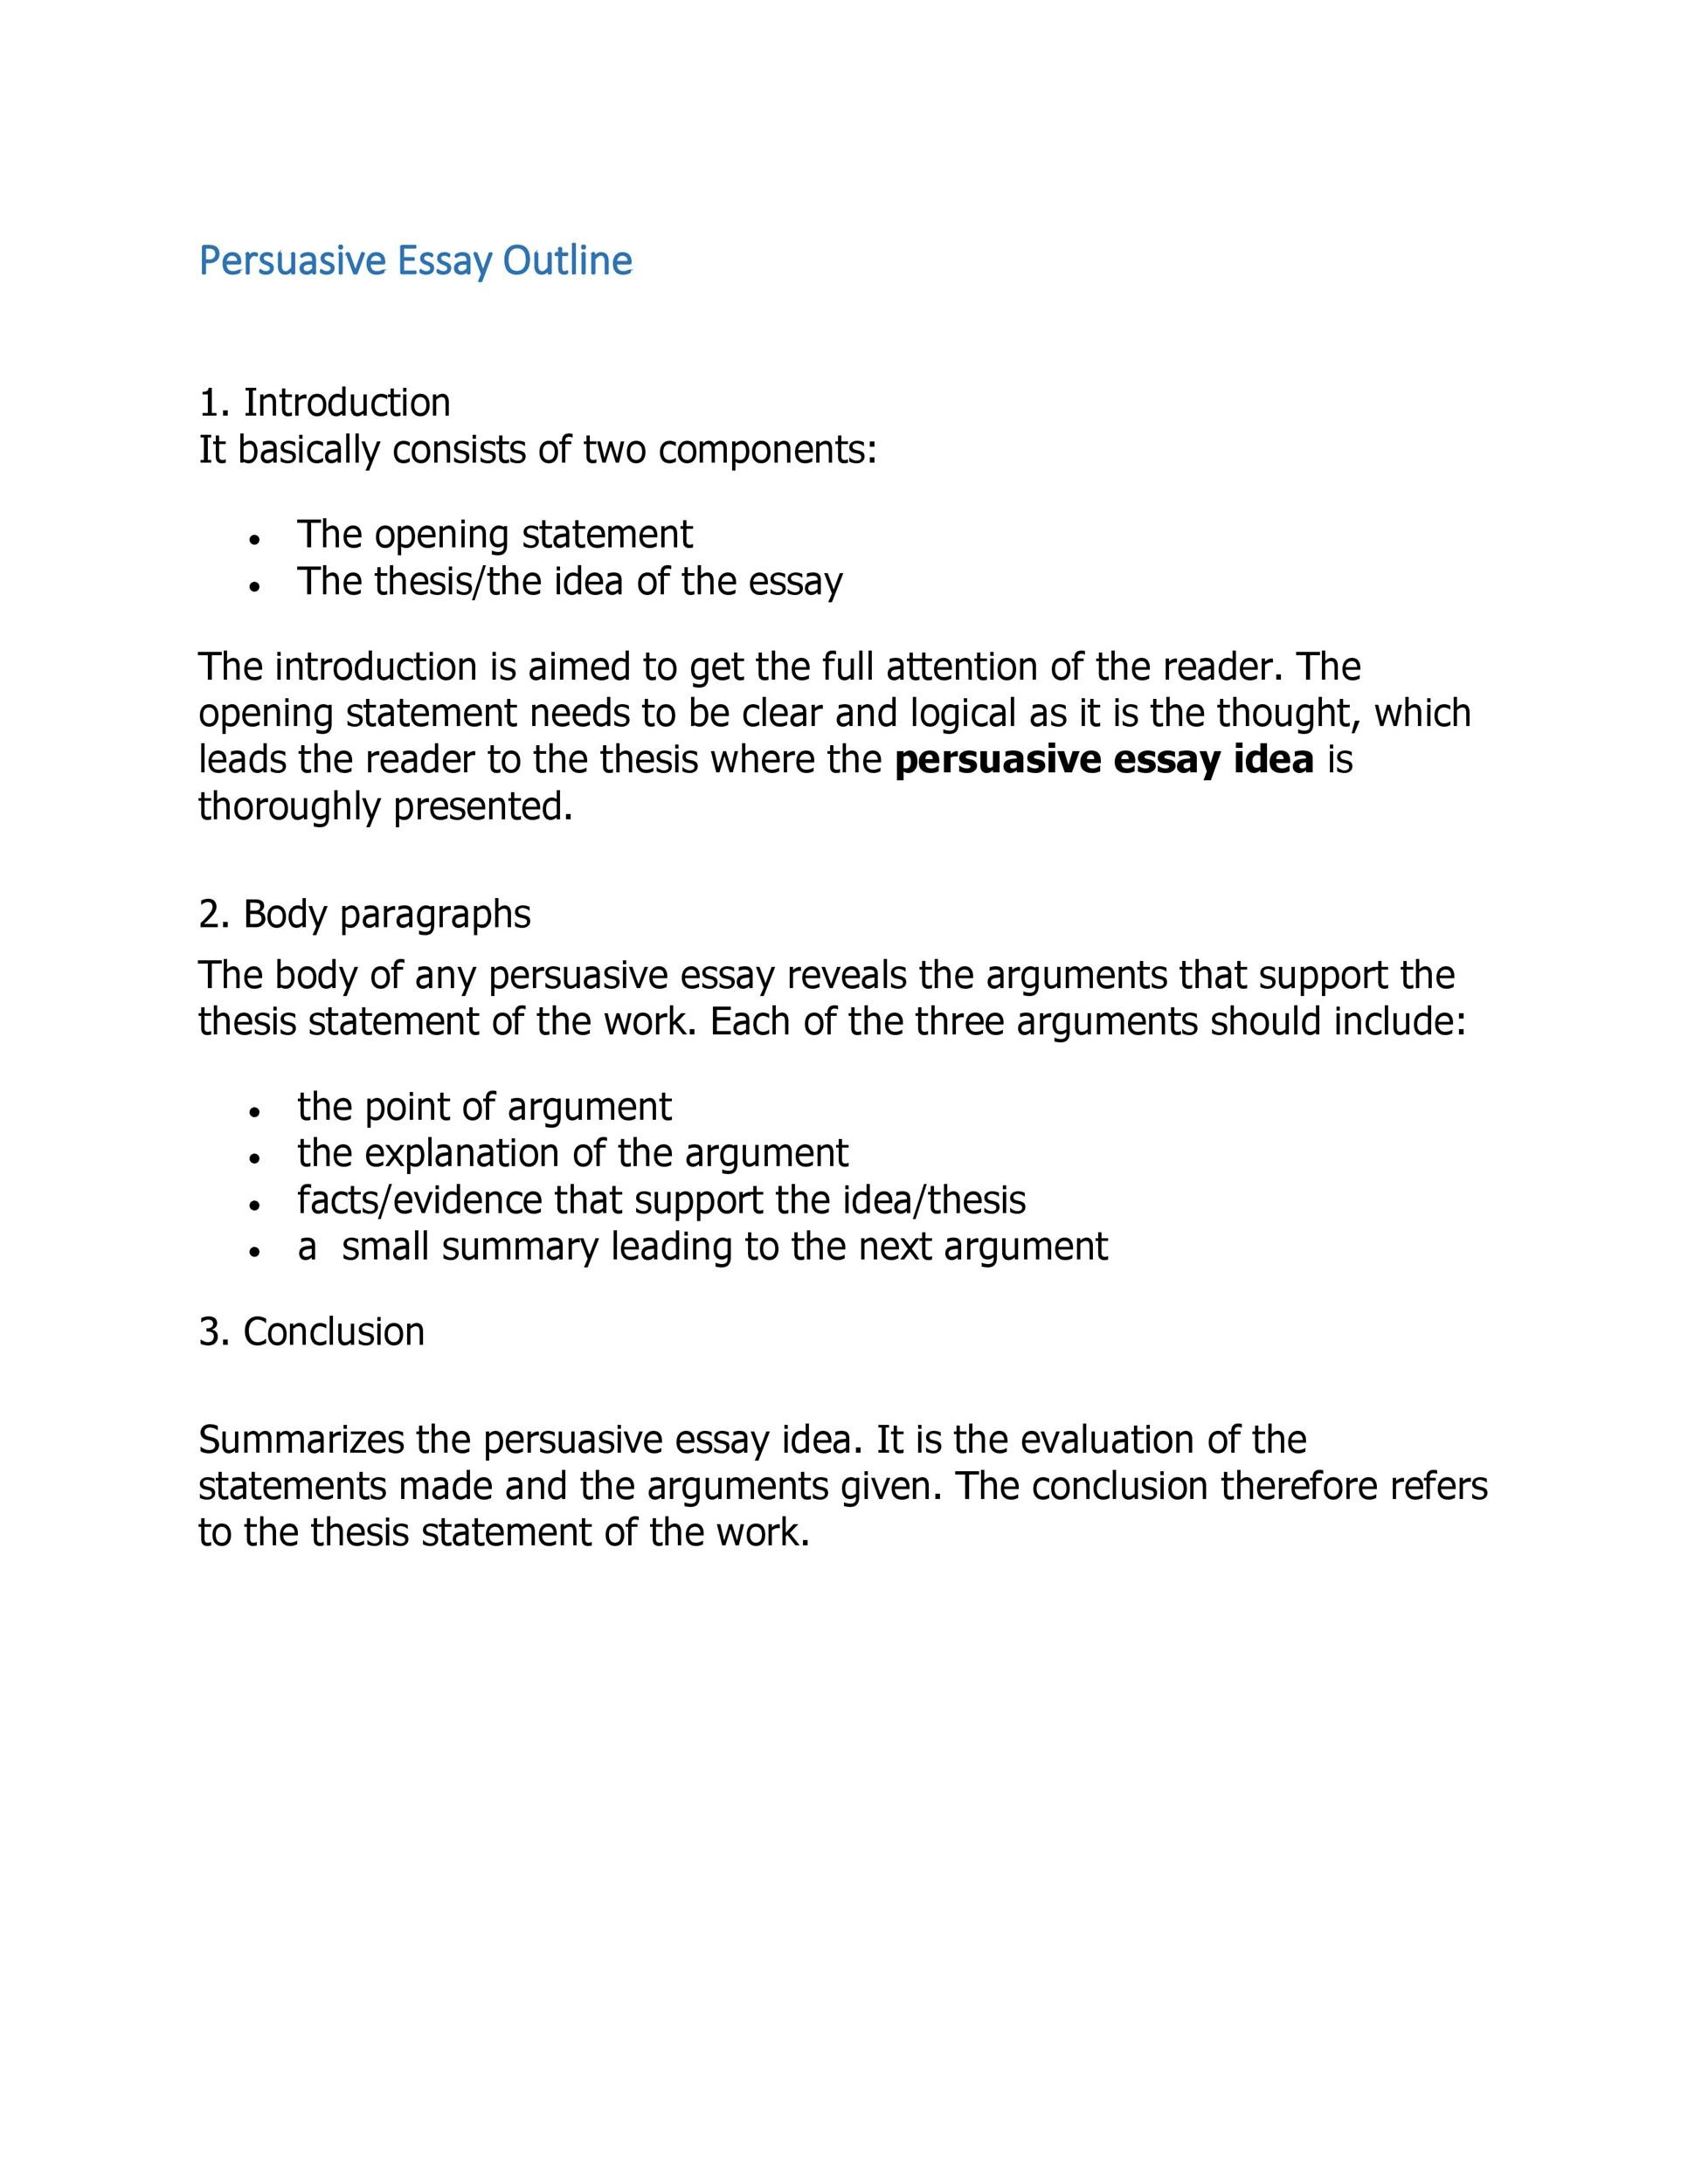 Example of an outline of an essay